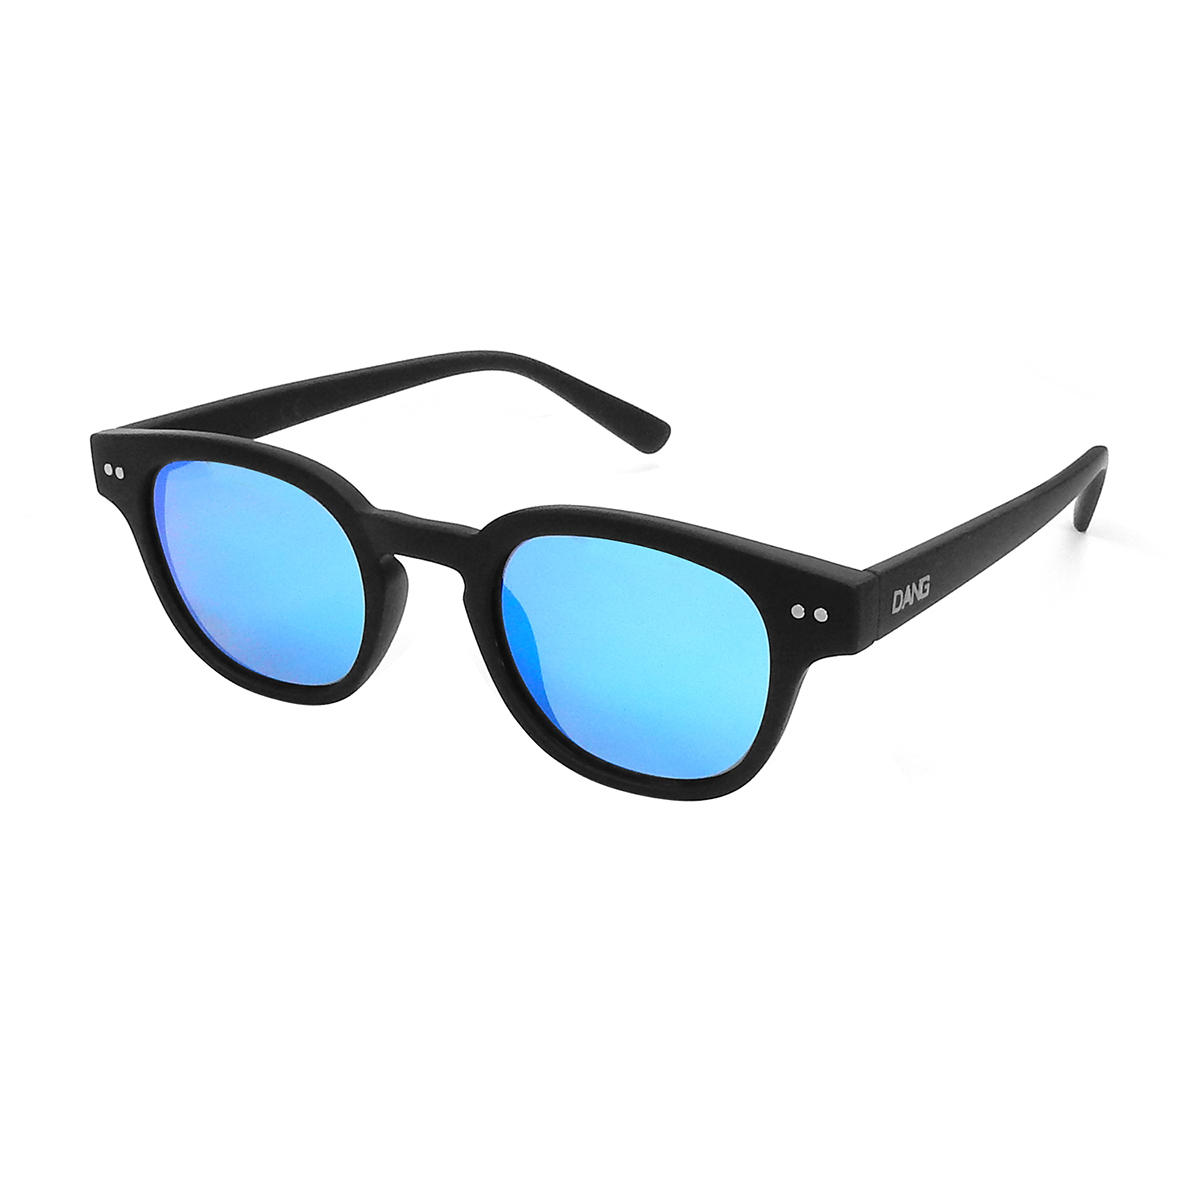 ZENITH Black Soft x Sky Blue Mirror Polarized